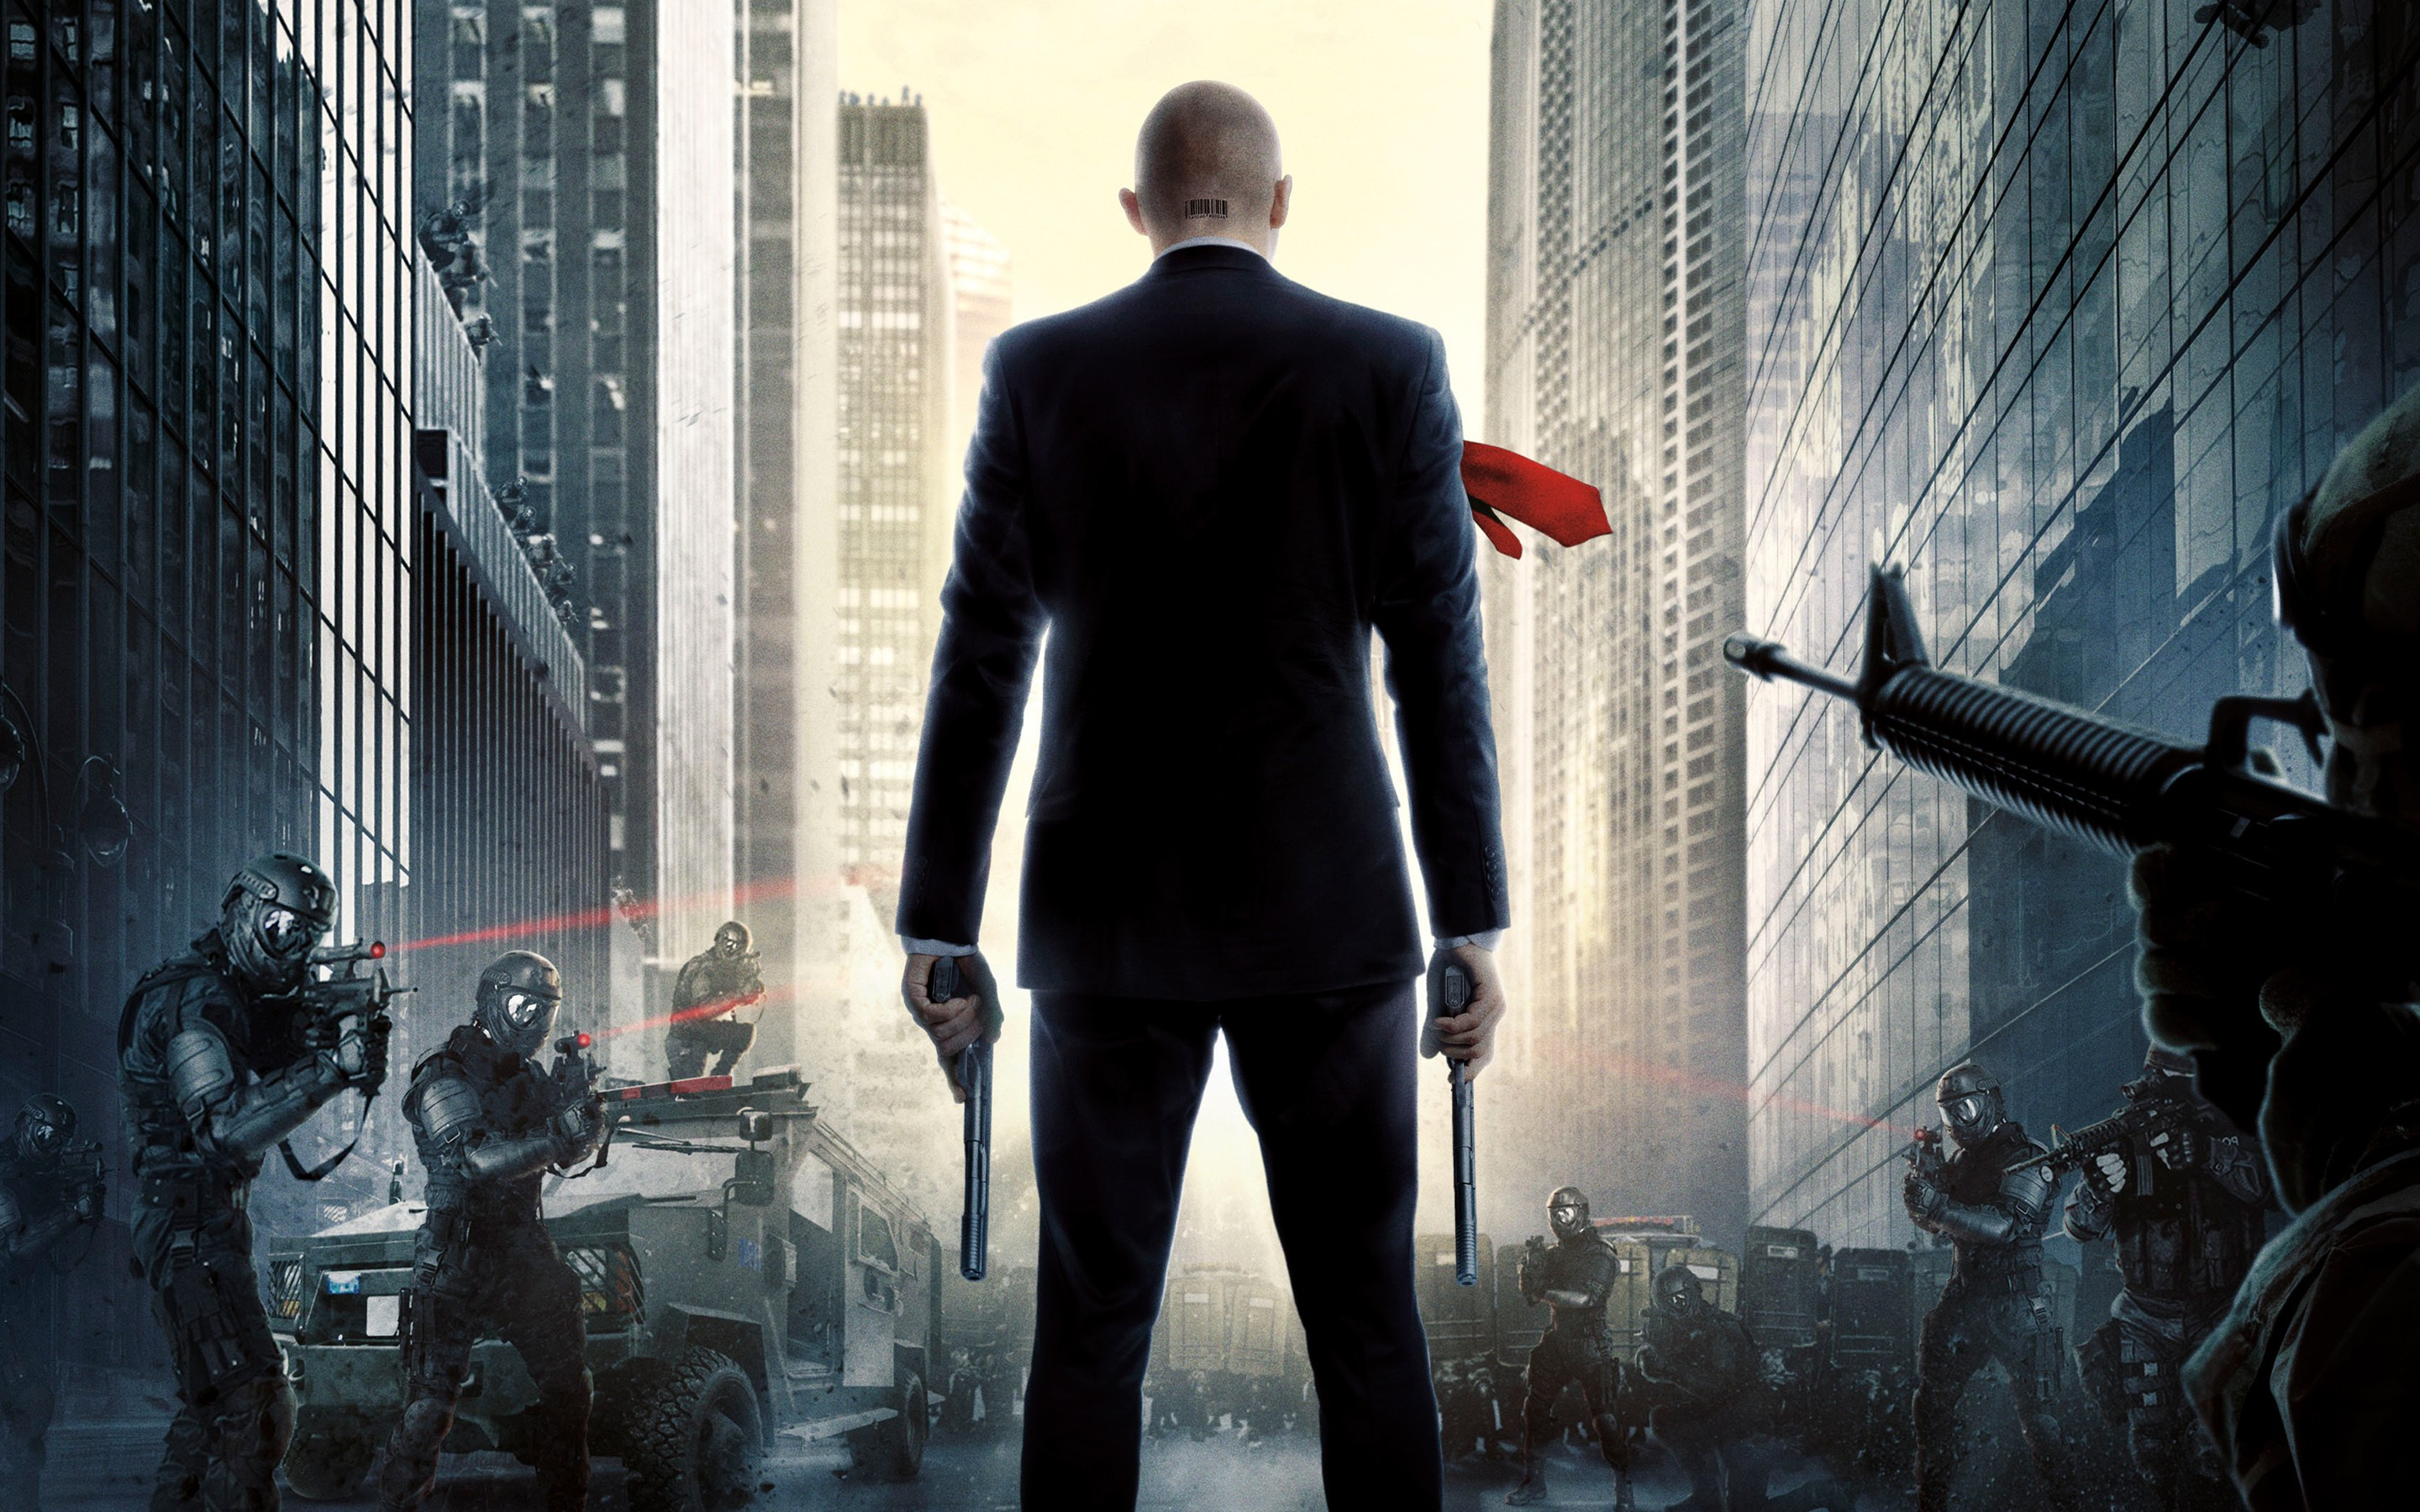 1280x1024 Hitman Agent 47 1280x1024 Resolution Hd 4k Wallpapers